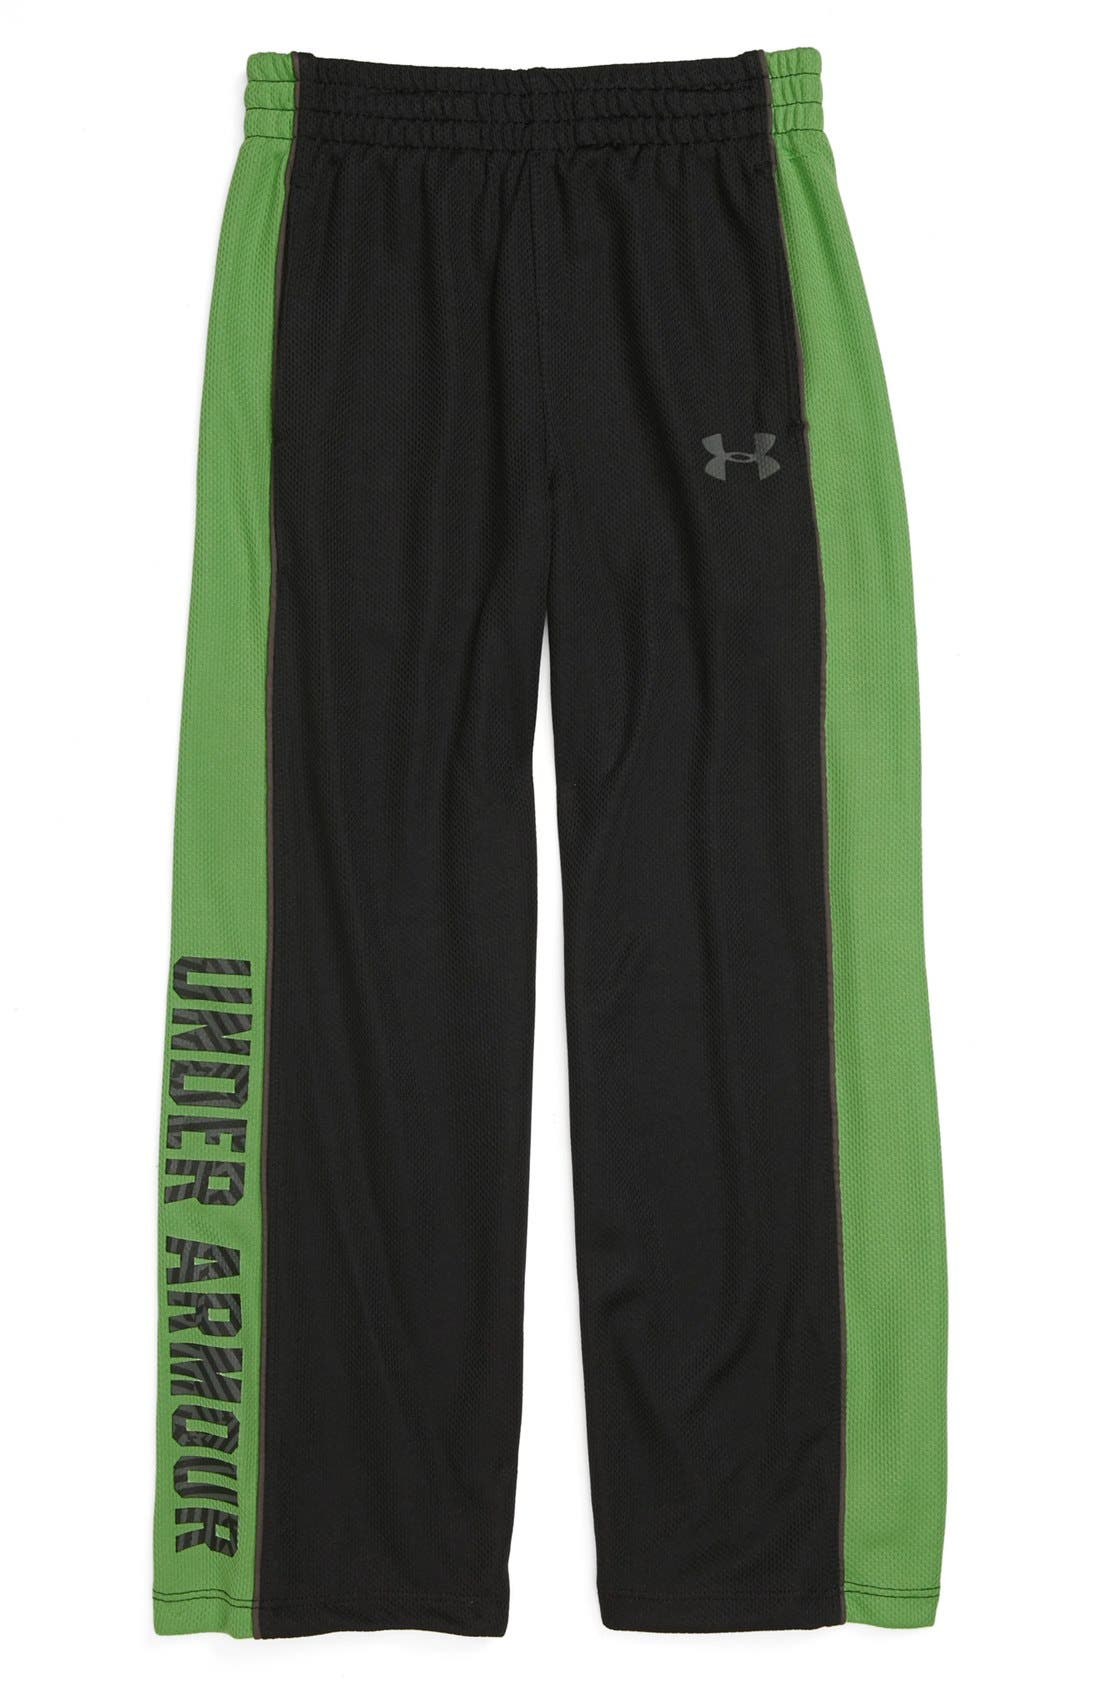 Alternate Image 1 Selected - Under Armour 'Favella' Mesh Pants (Little Boys)